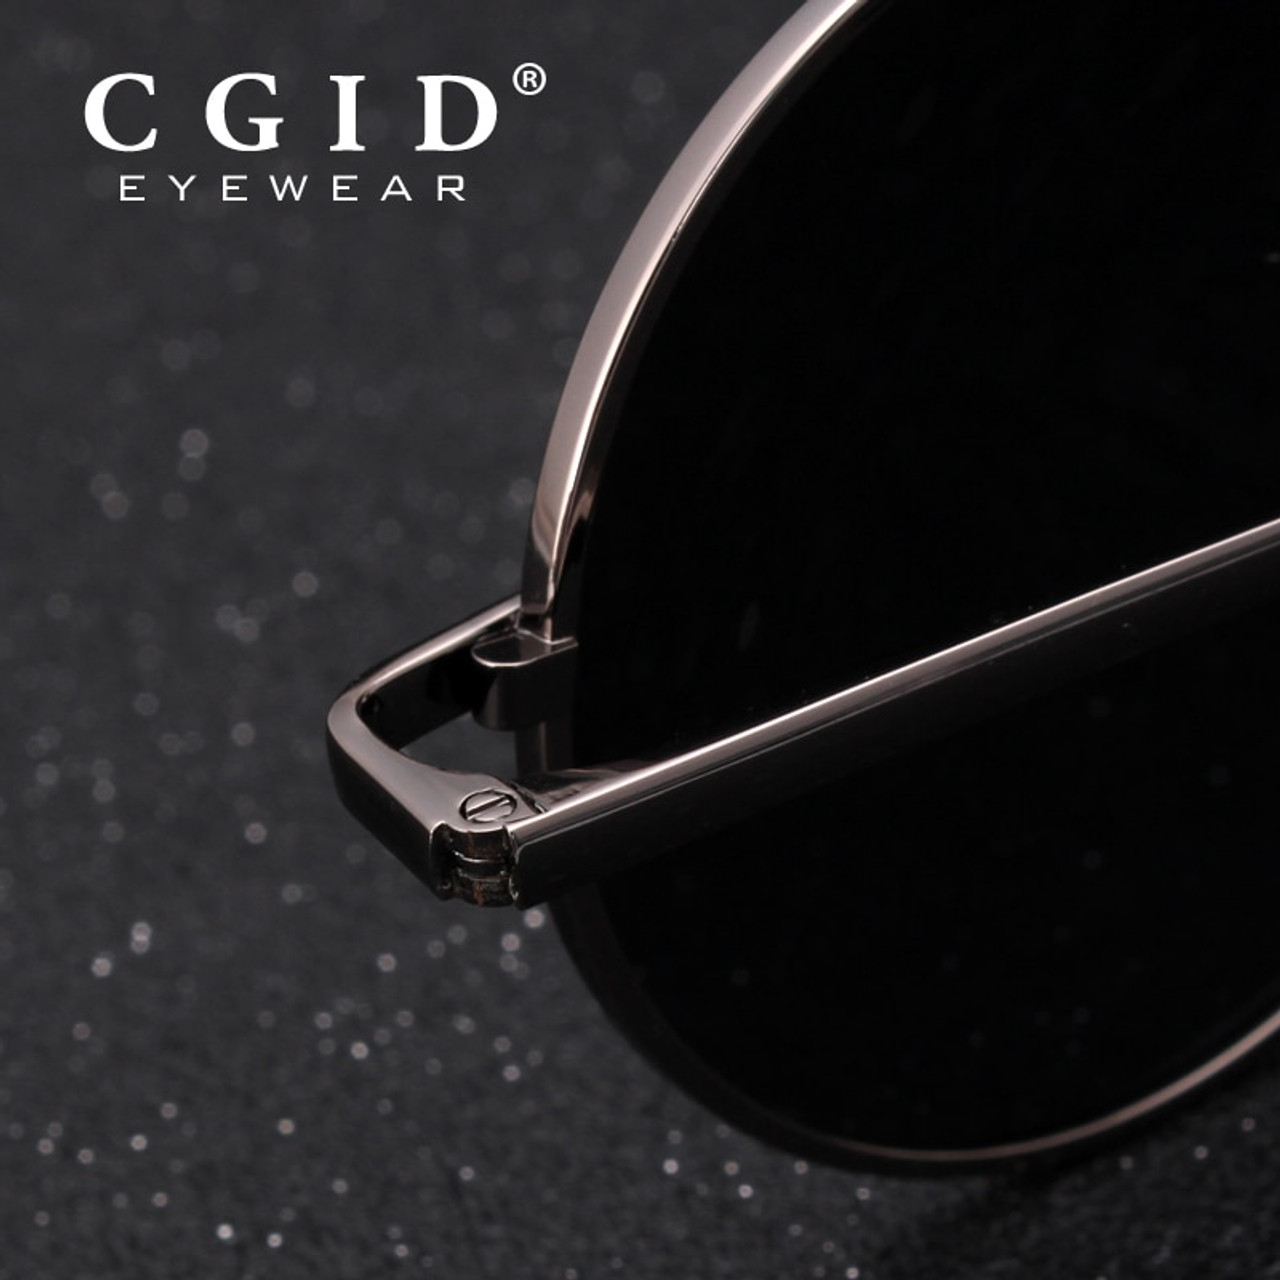 b020567cc5a ... CGID 2018 Round Lennon Sunglasses Polarized Retro Vintage Inspired  Metal Circle Black Sun glasses for Men ...